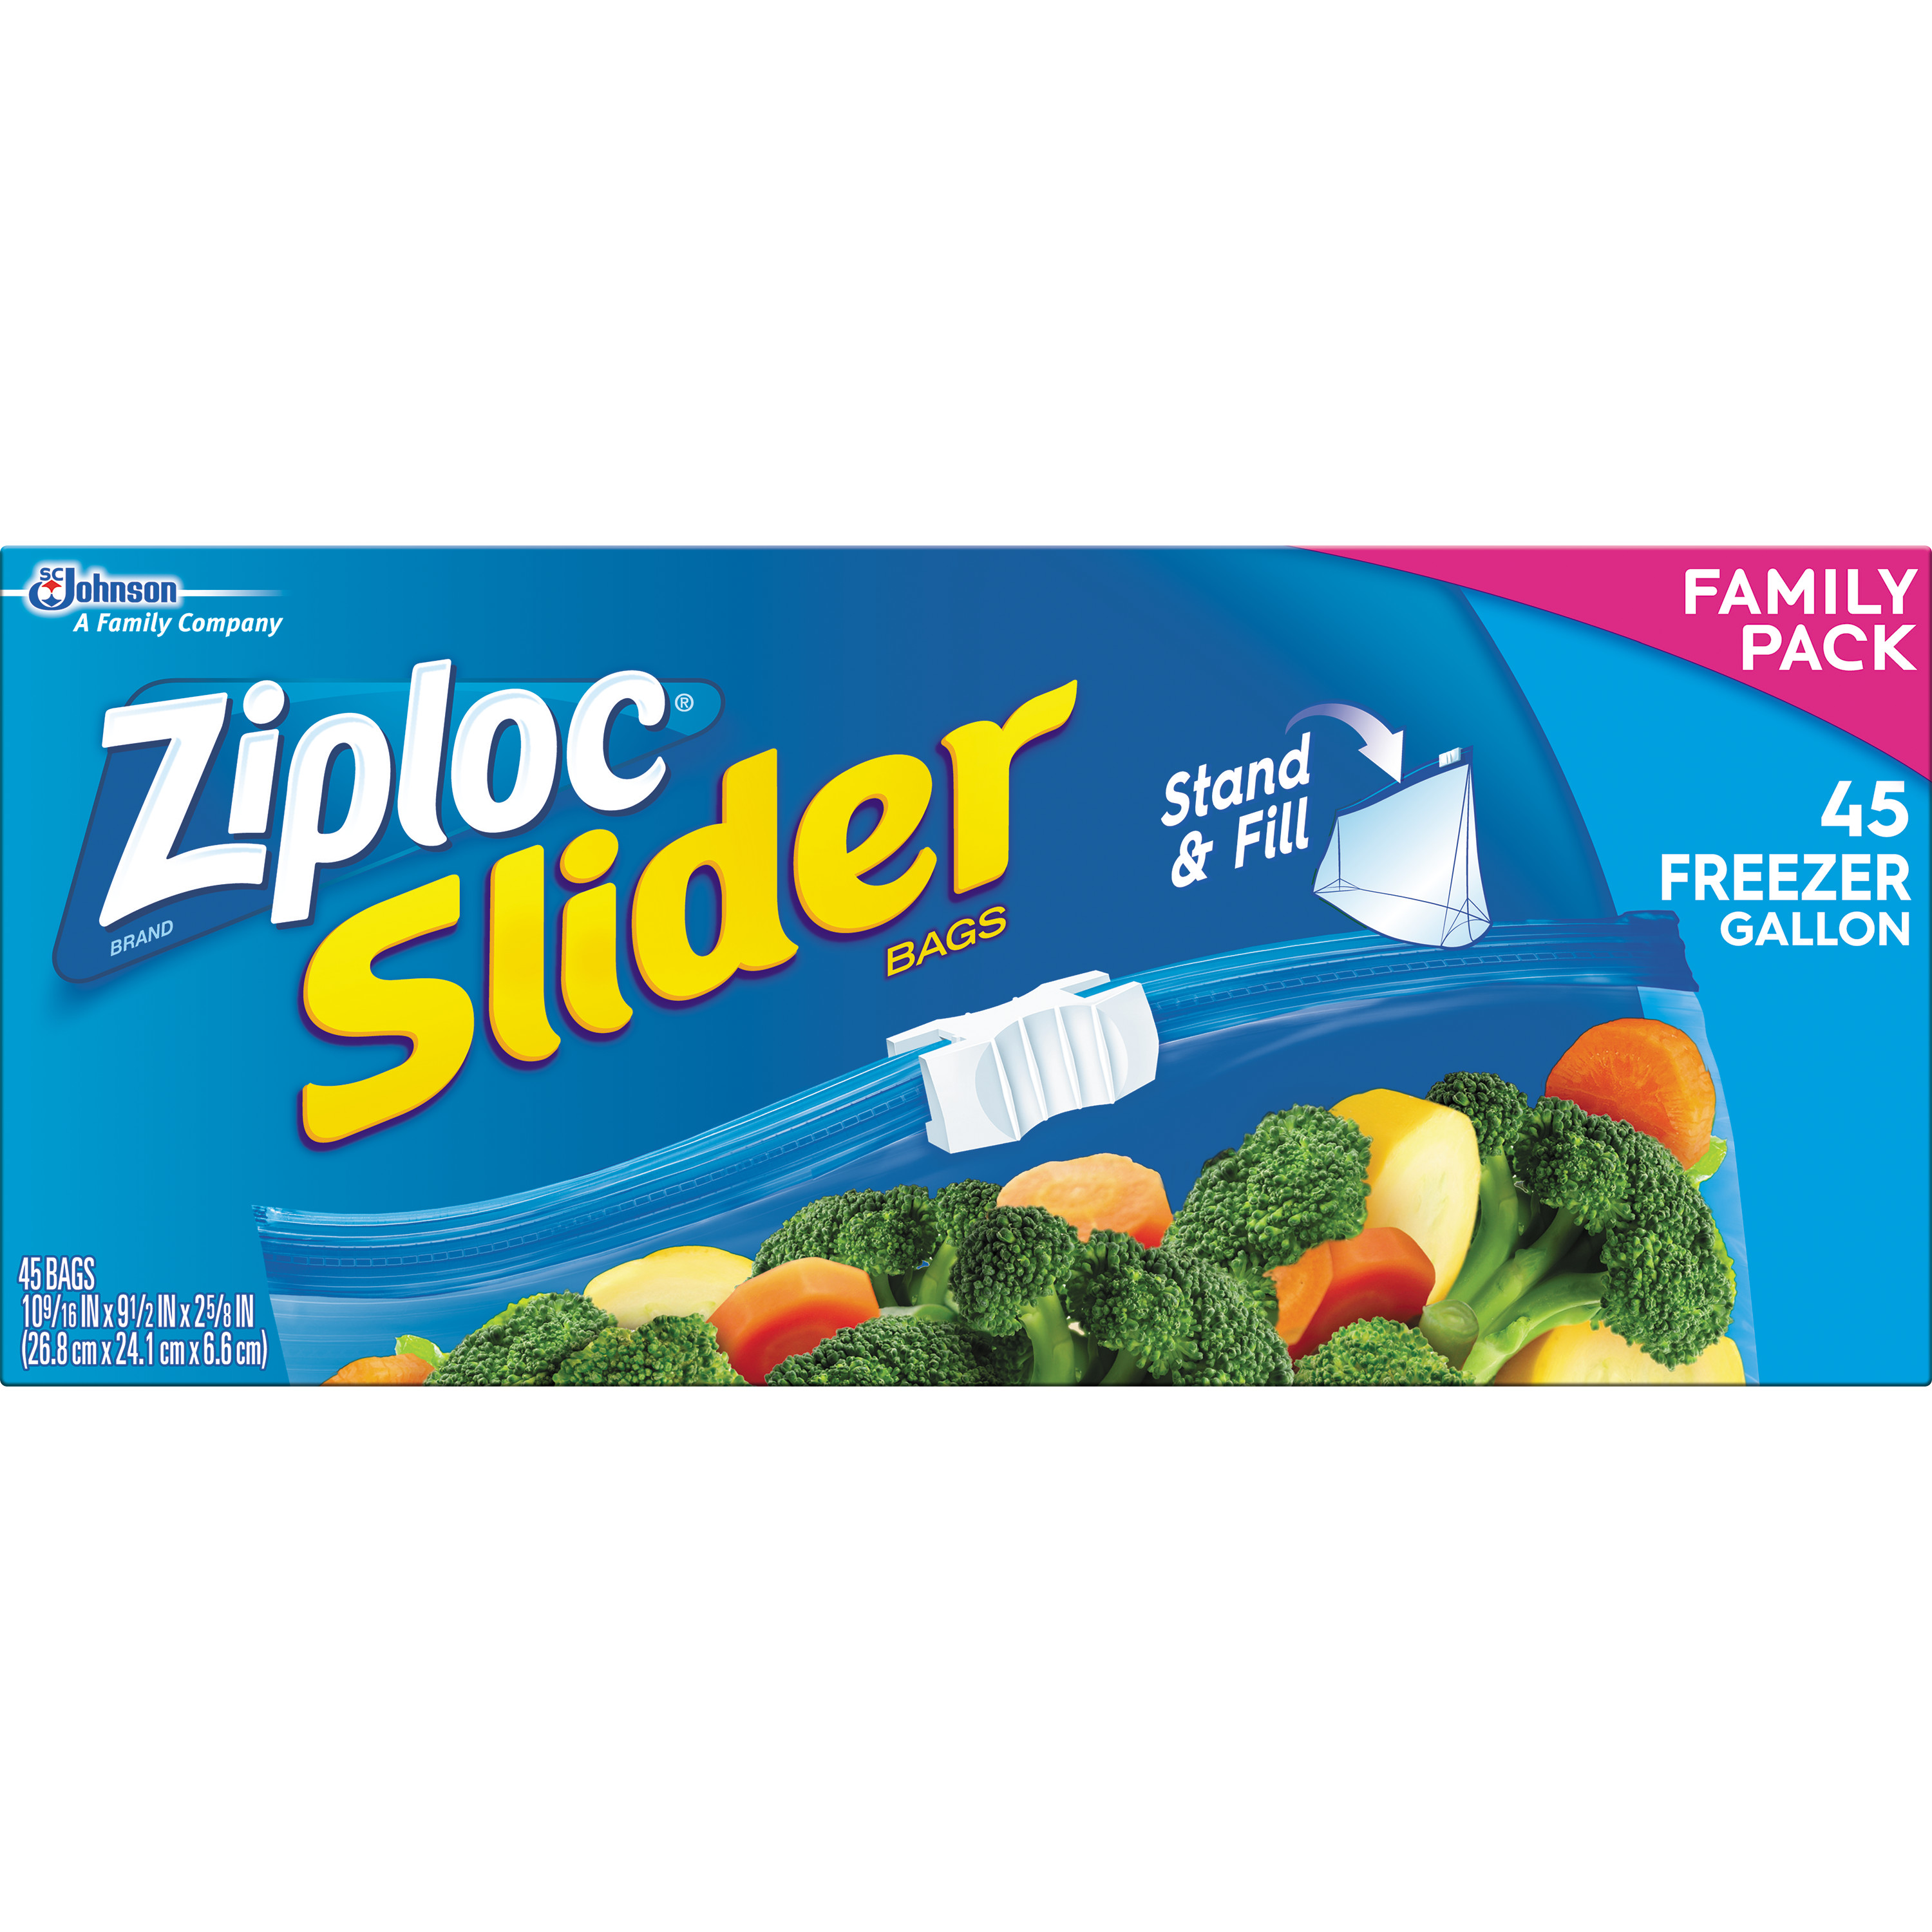 Ziploc Slider Freezer Gallon Family Pack 45 Count